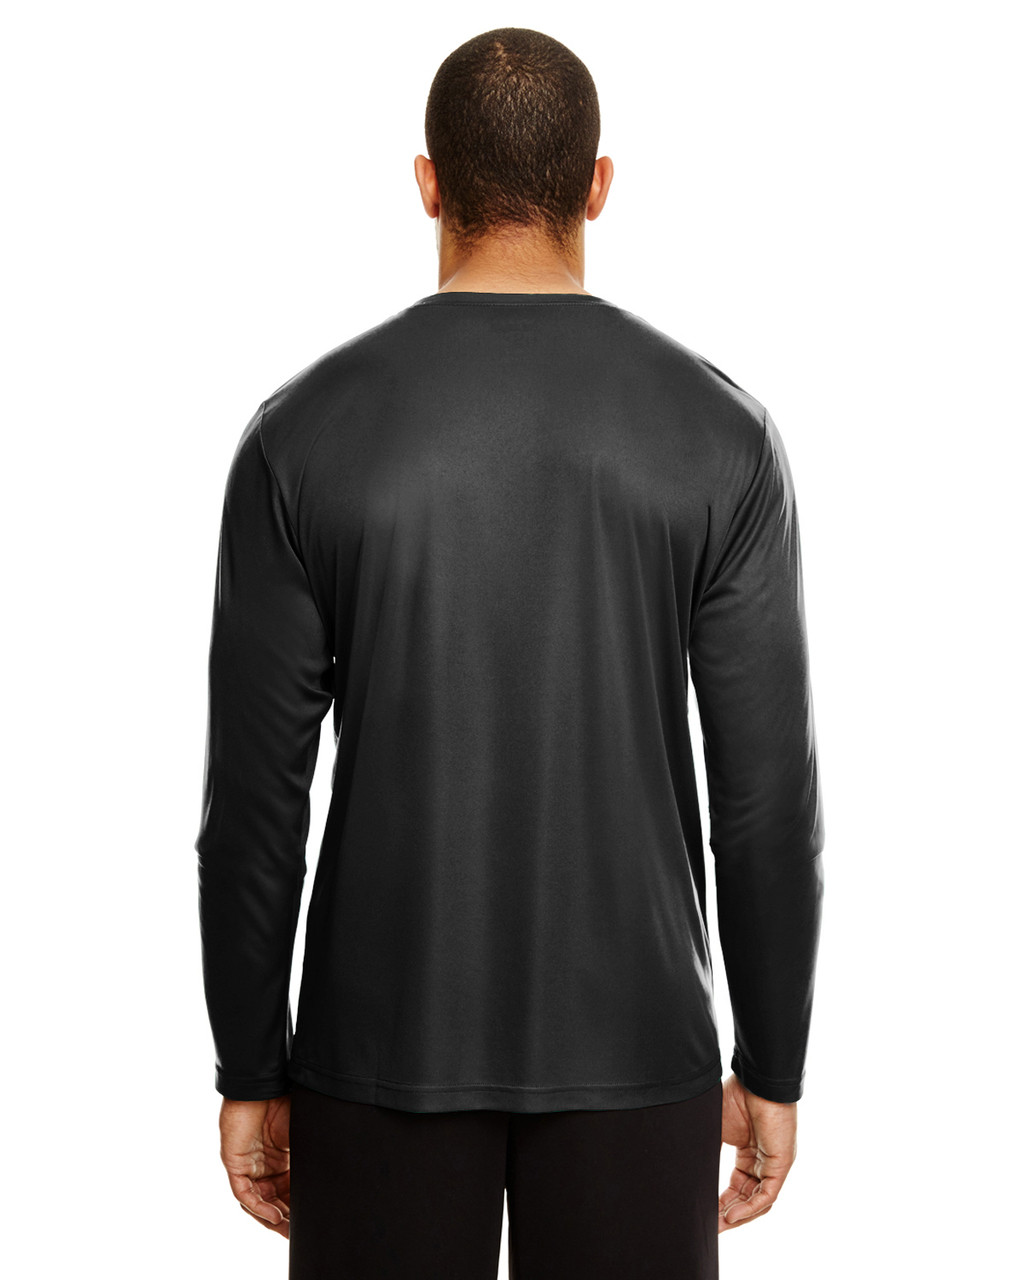 Black, Back - TT11L Team 365 Men's Zone Performance Long Sleeve T-Shirt | BlankClothing.ca